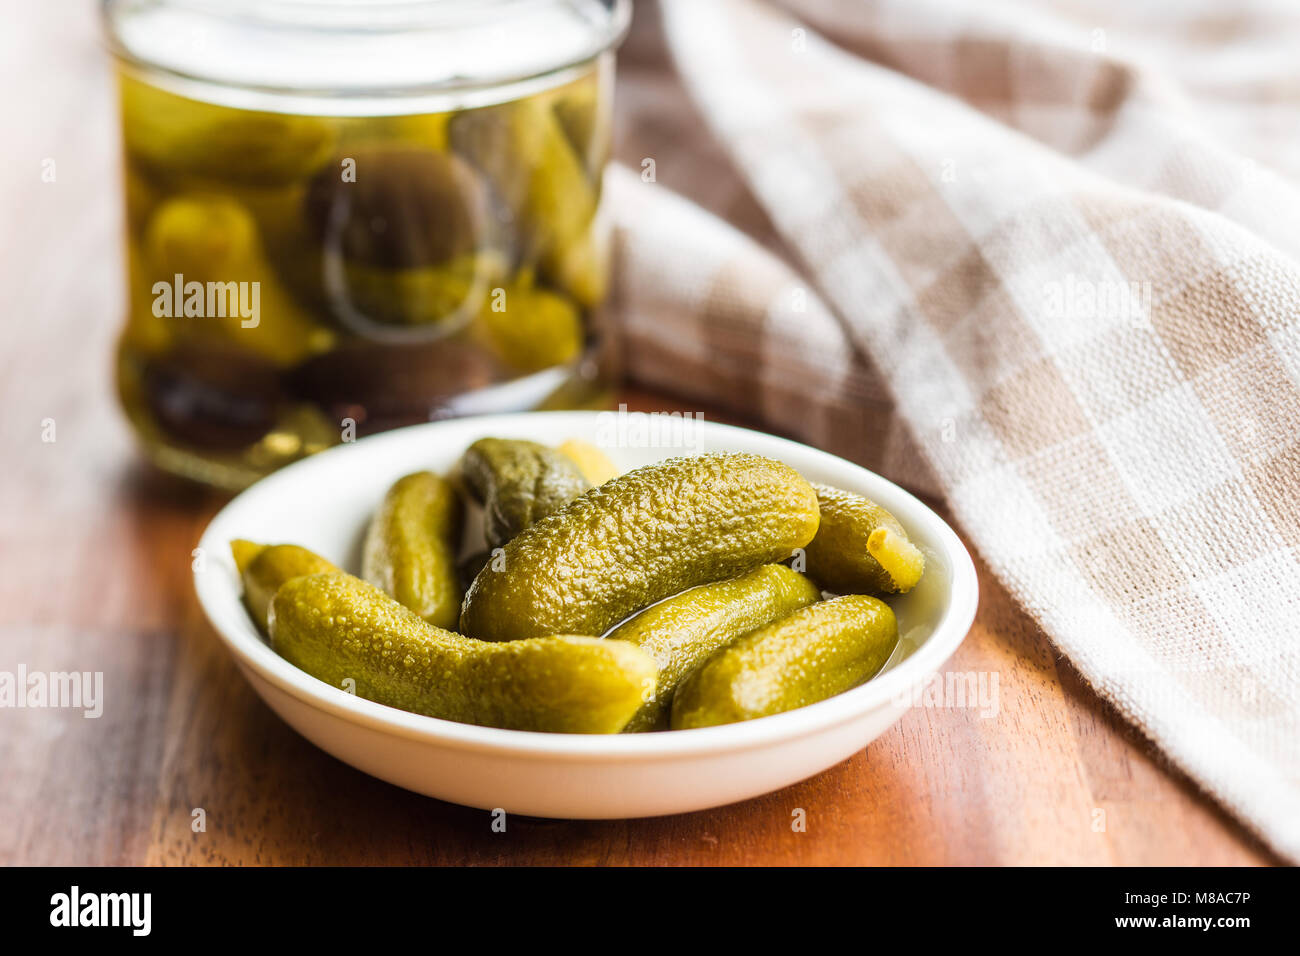 Pickles. Preserved cucumbers in bowl. - Stock Image